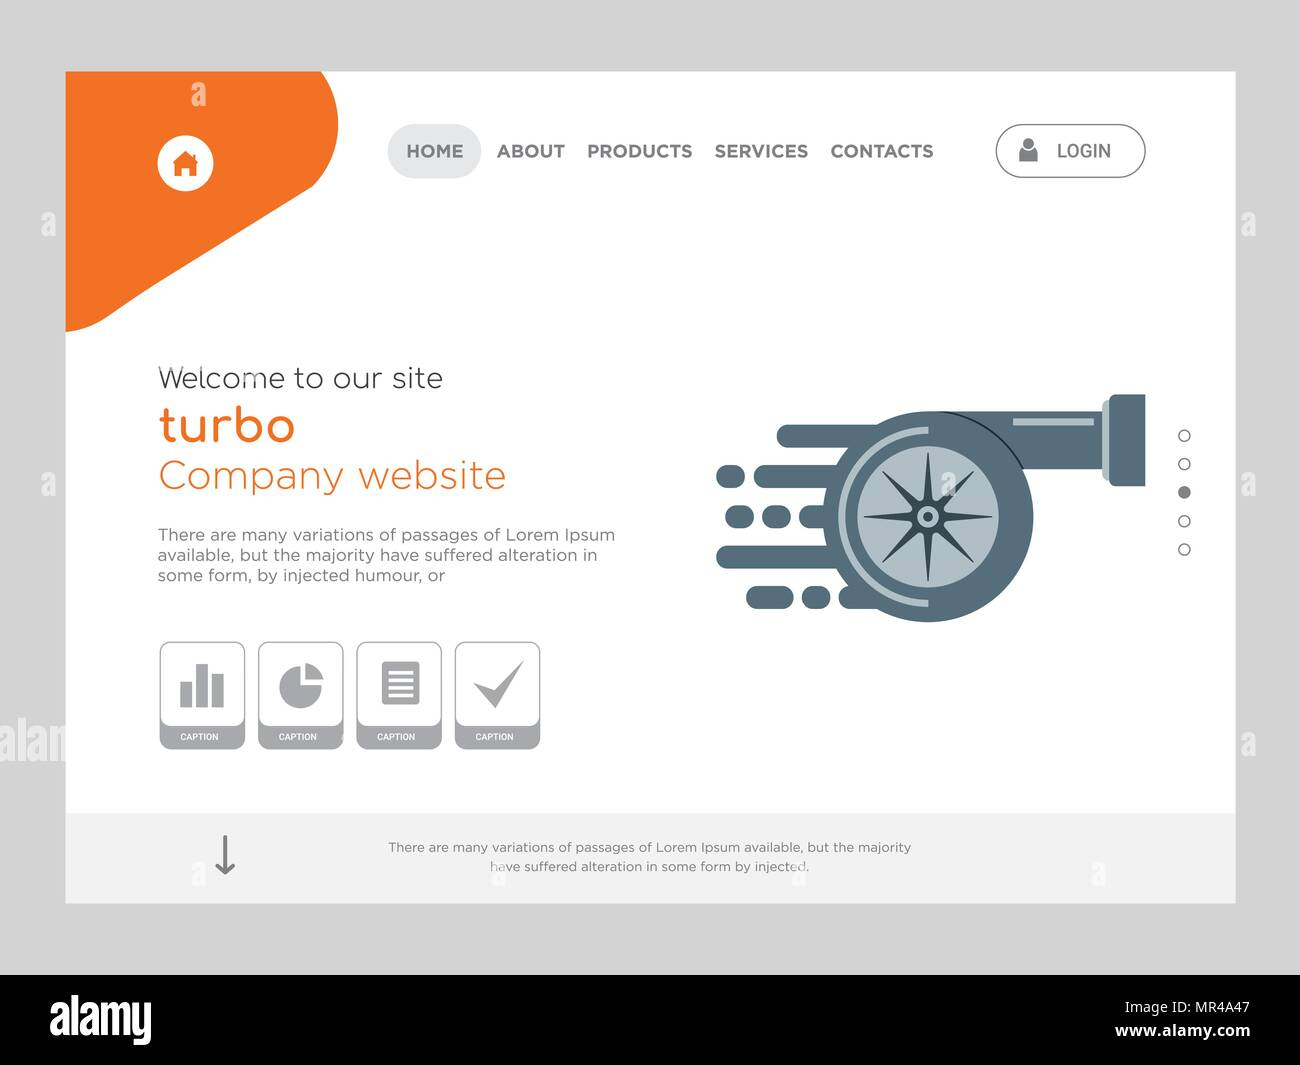 Turbo Charger Stockfotos & Turbo Charger Bilder - Seite 3 - Alamy